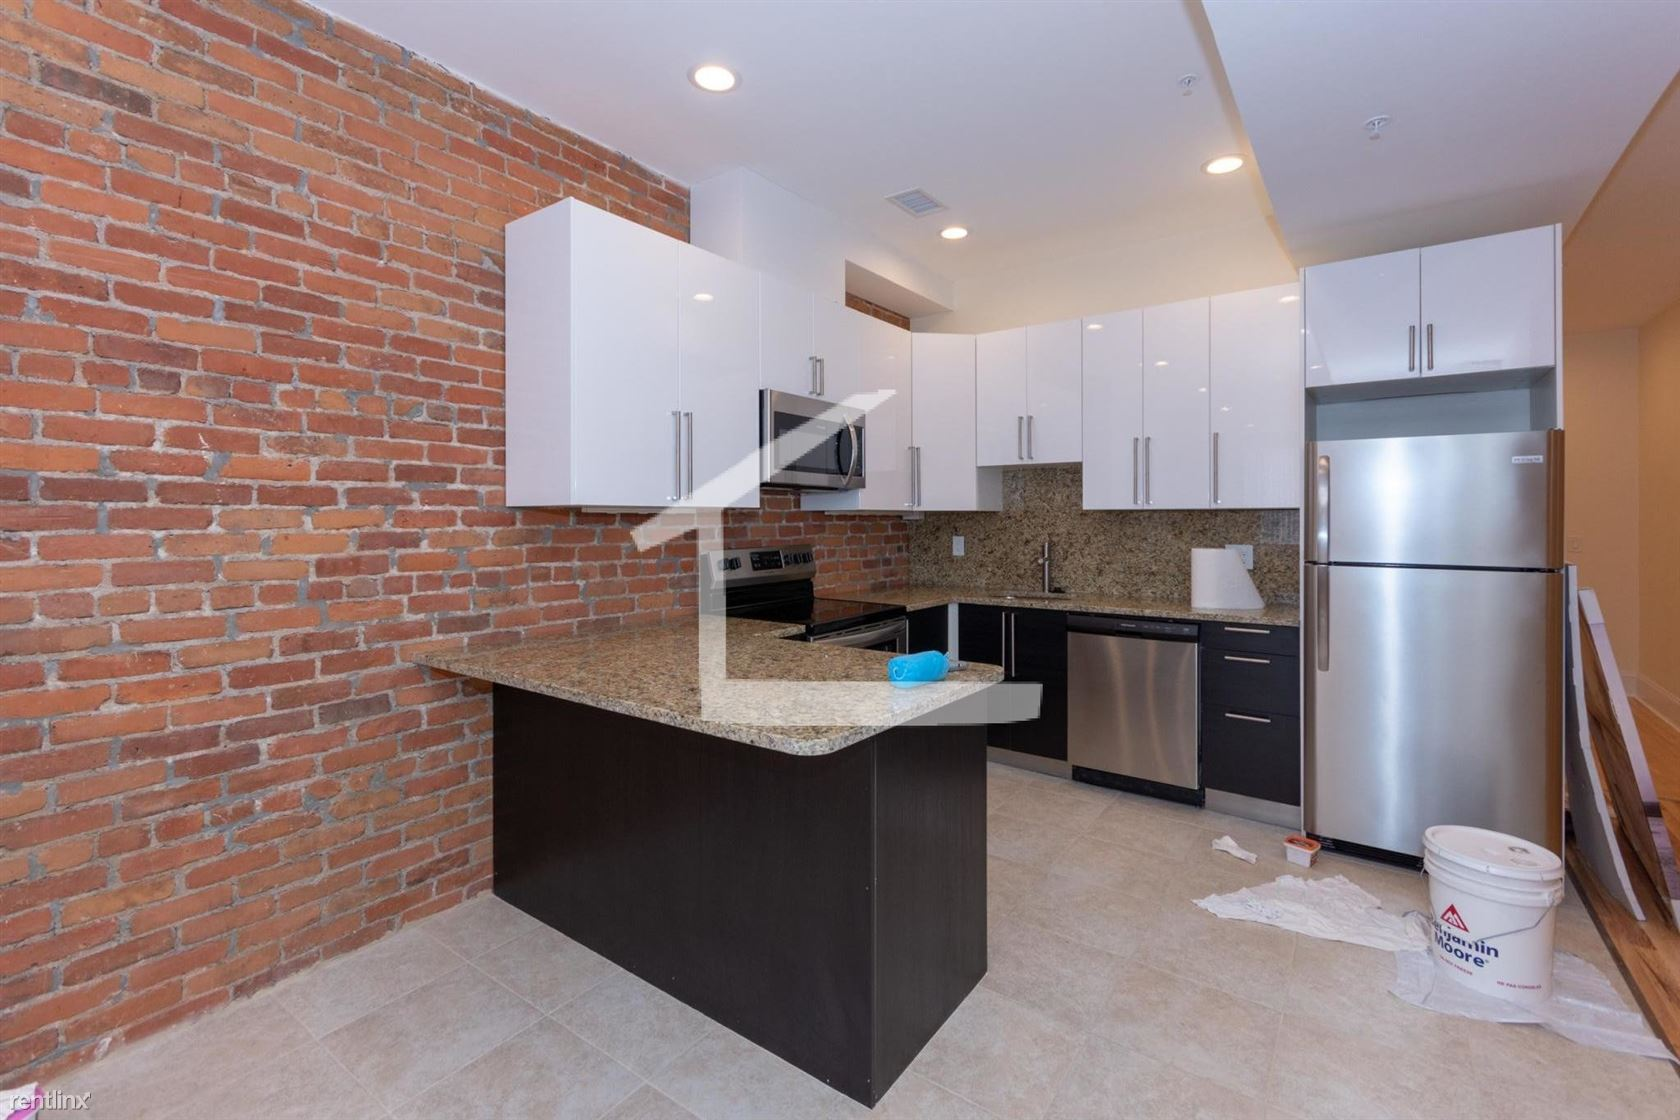 1032 Commonwealth Ave Unit 1 - 4700USD / month